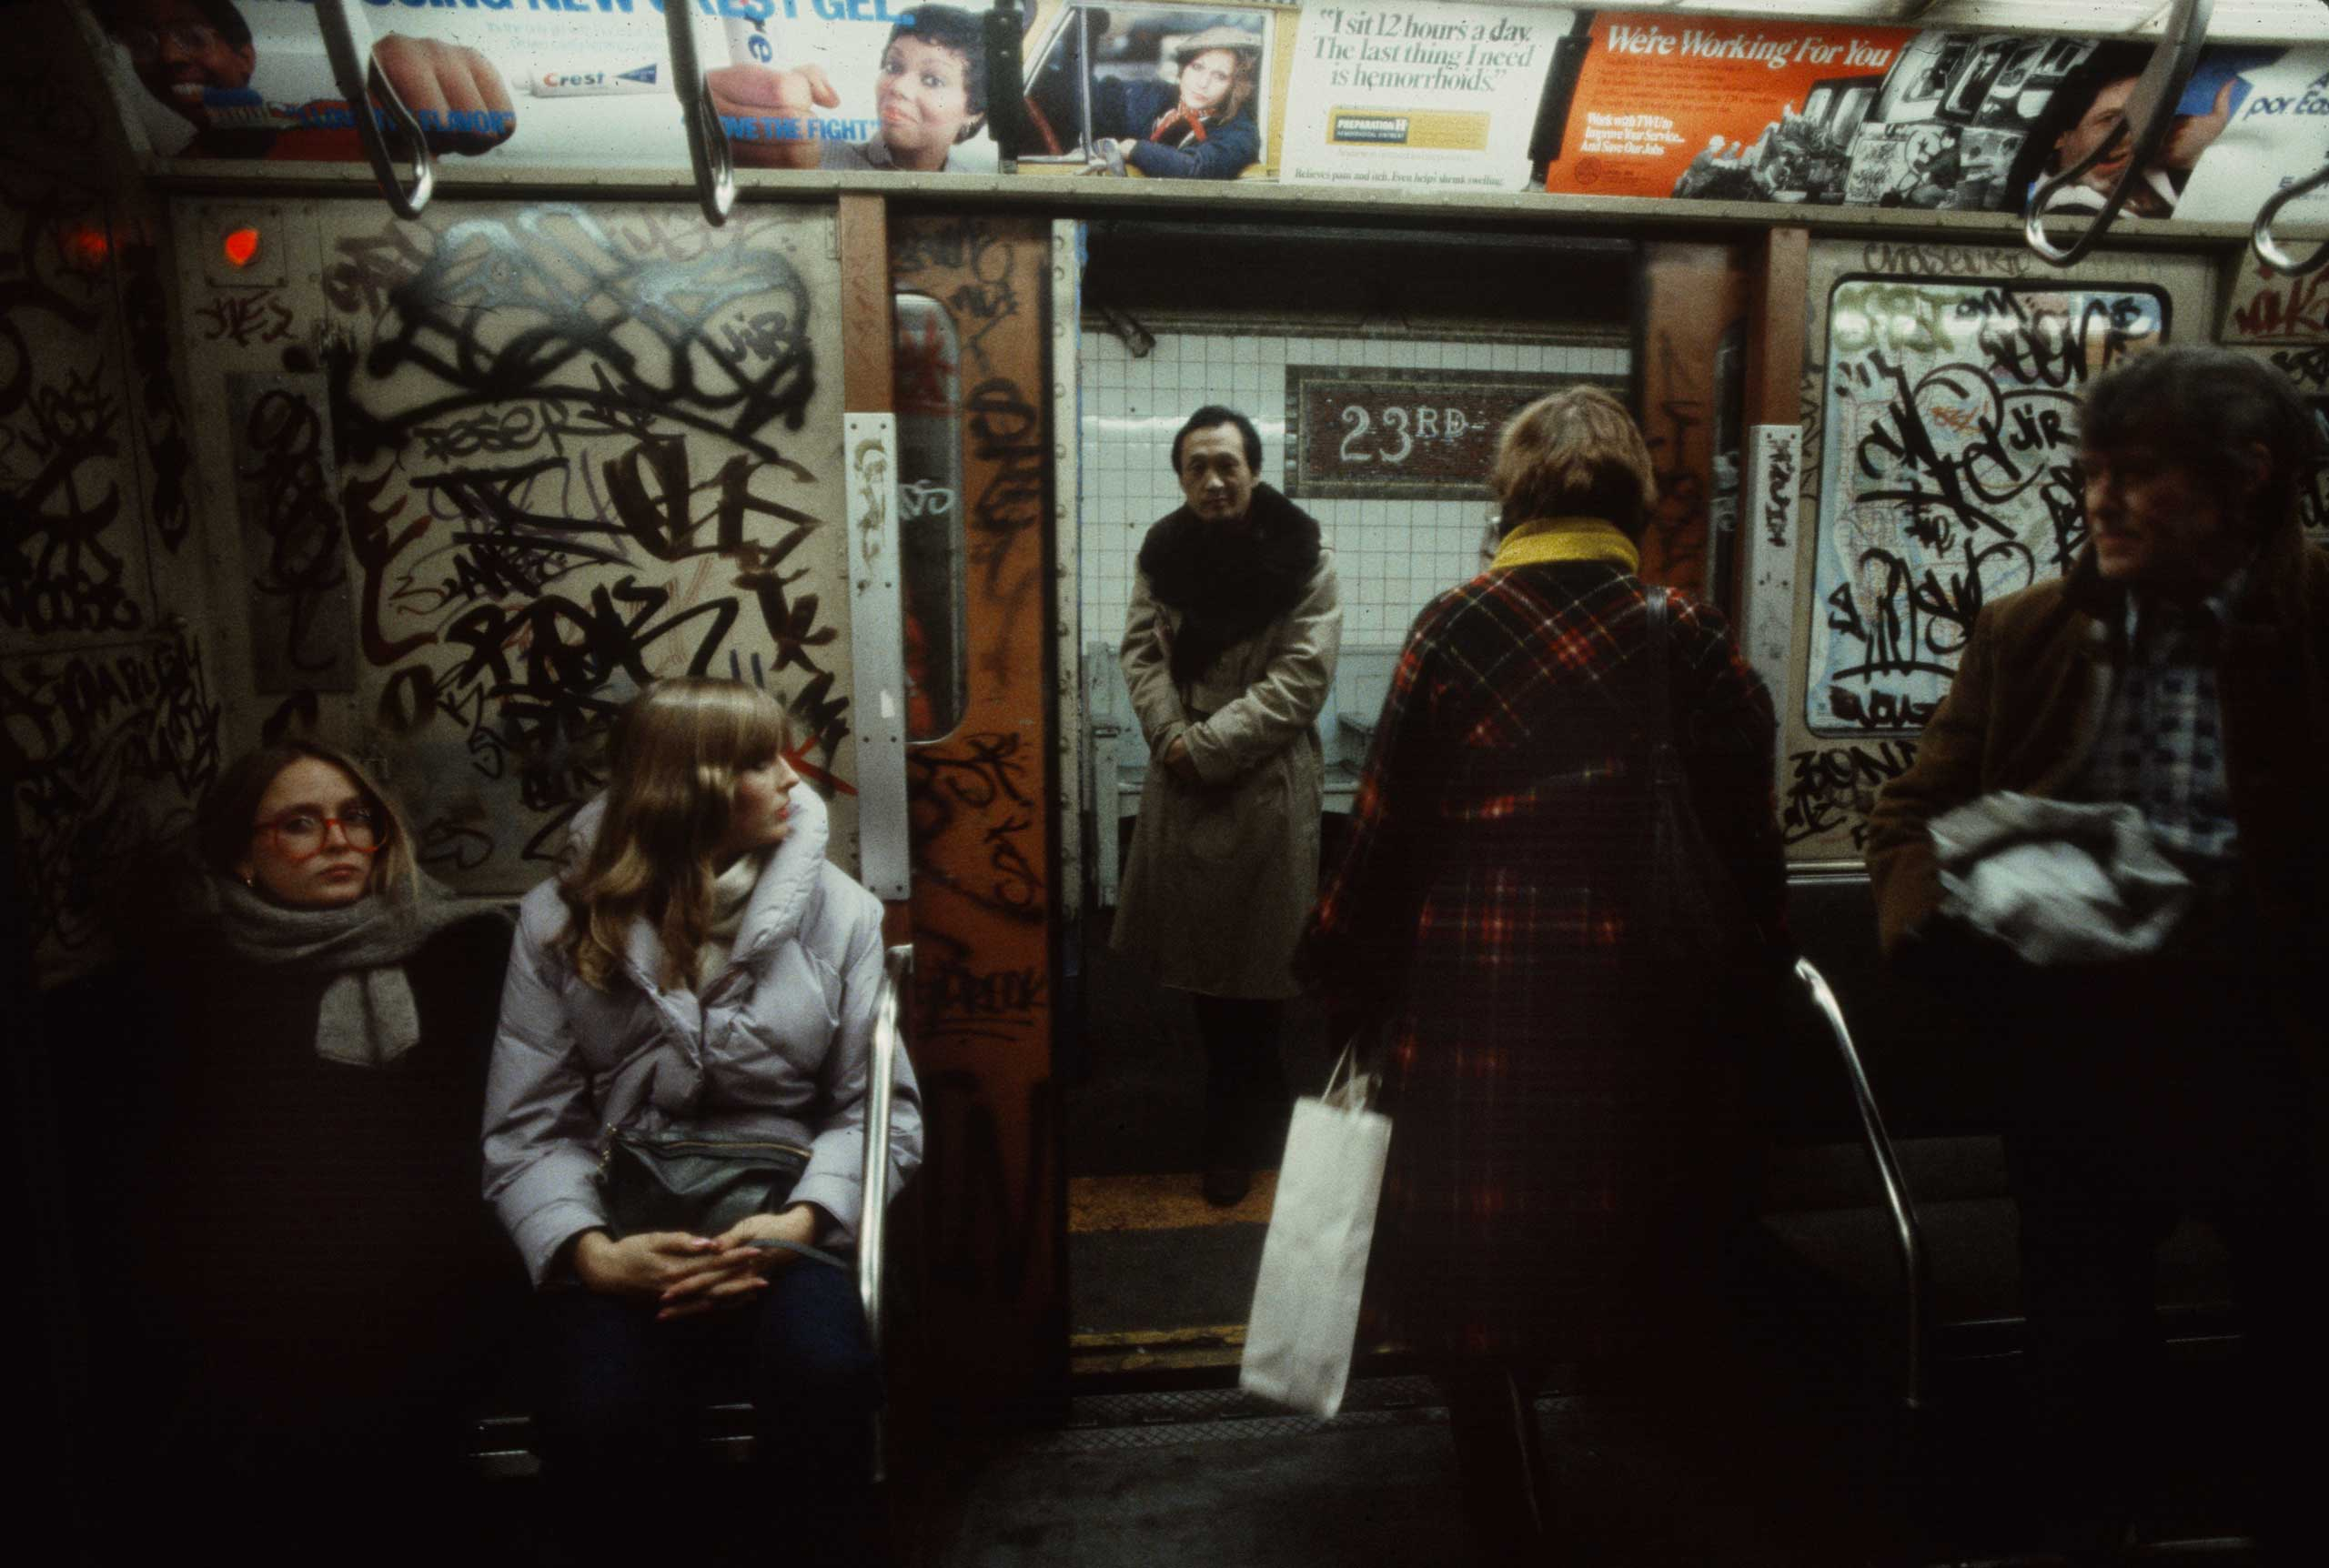 A man about to board a subway car, 1981.